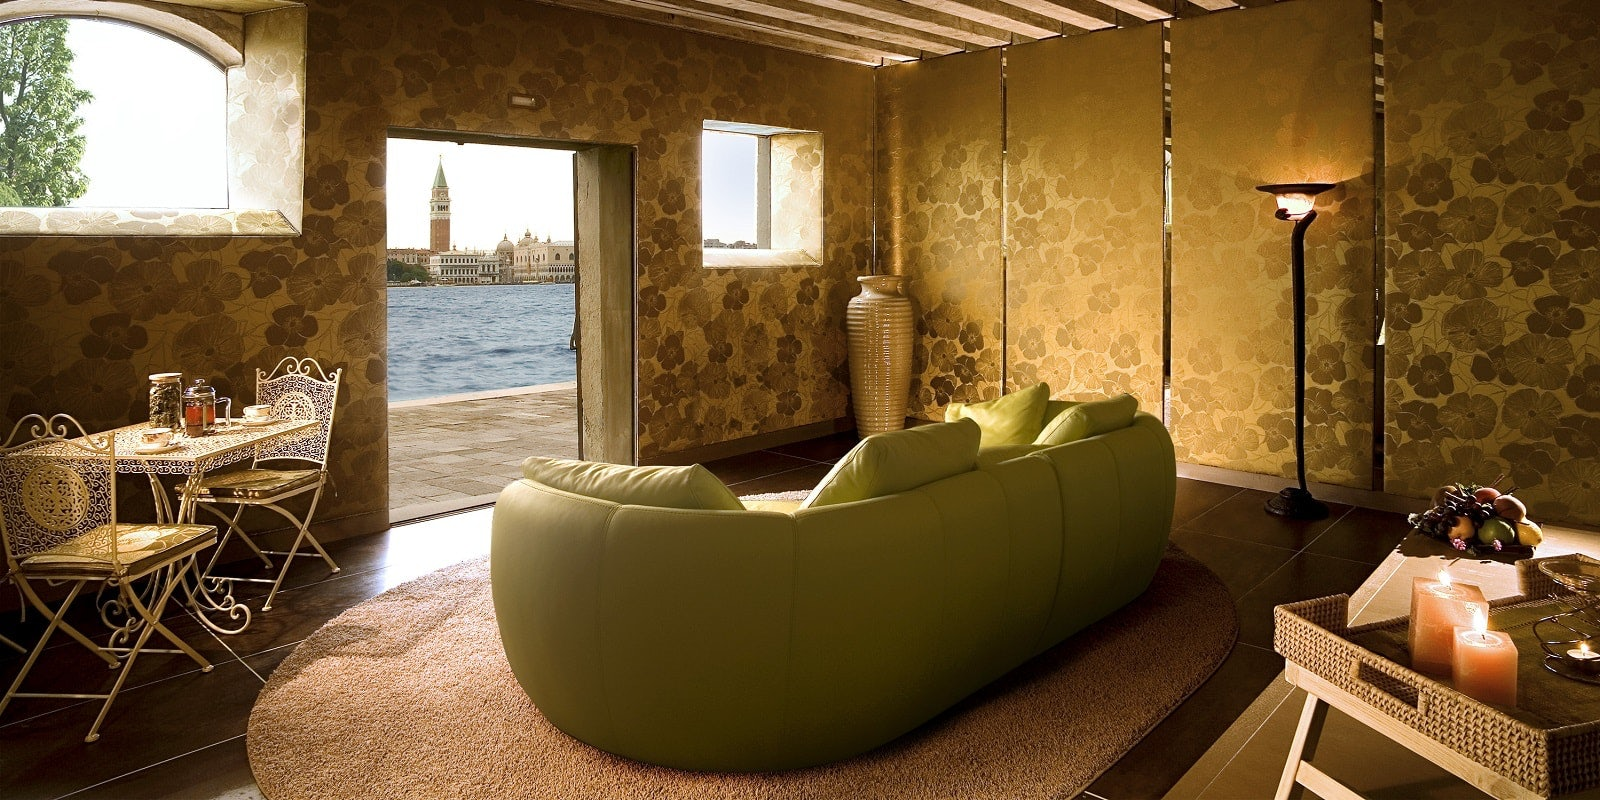 Spa lounge at the Bauer Palladio Venice